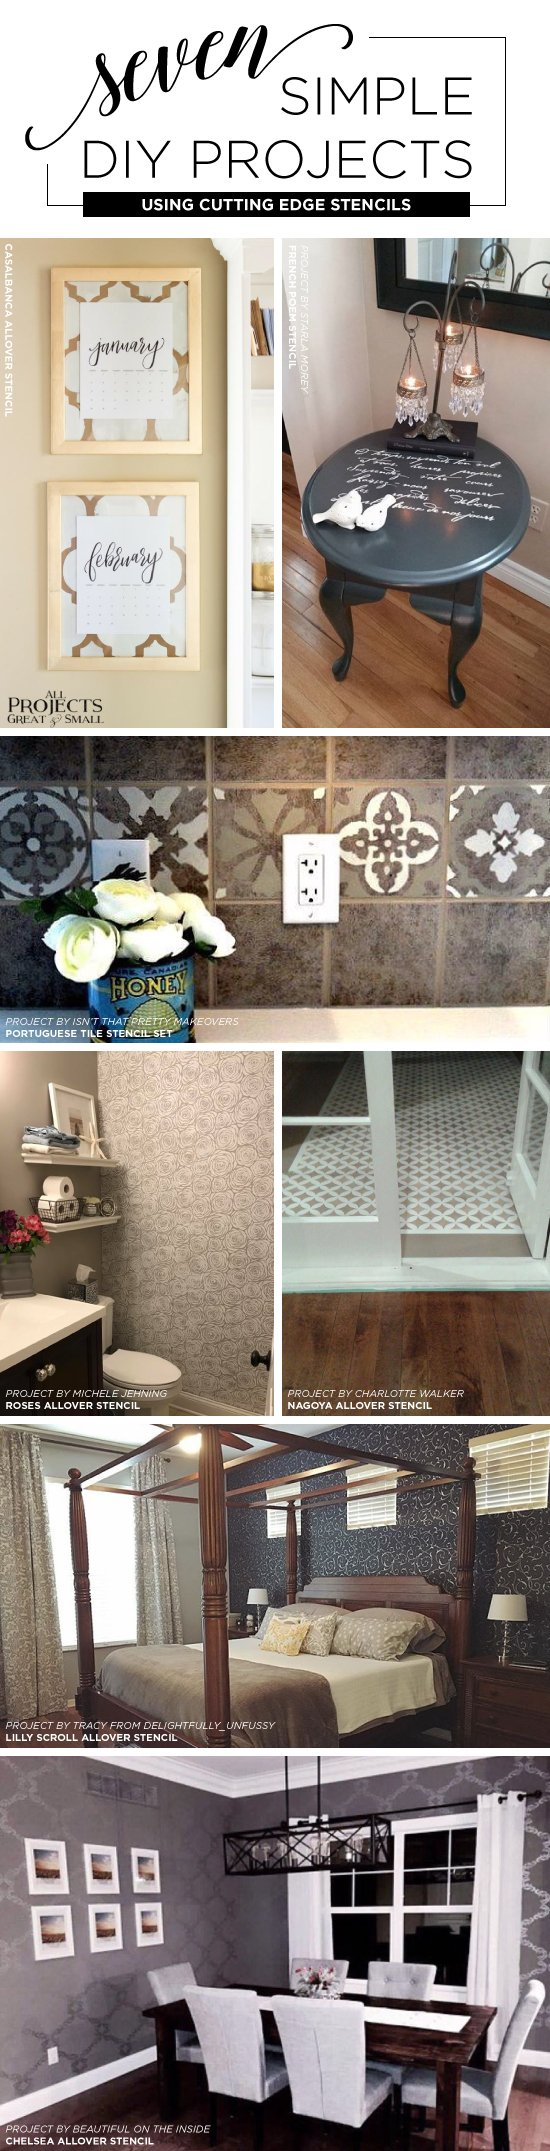 Seven simple diy projects using stencils stencil stories cutting edge stencils shares easy and affordable diy decorating ideas using stencil patterns http amipublicfo Images